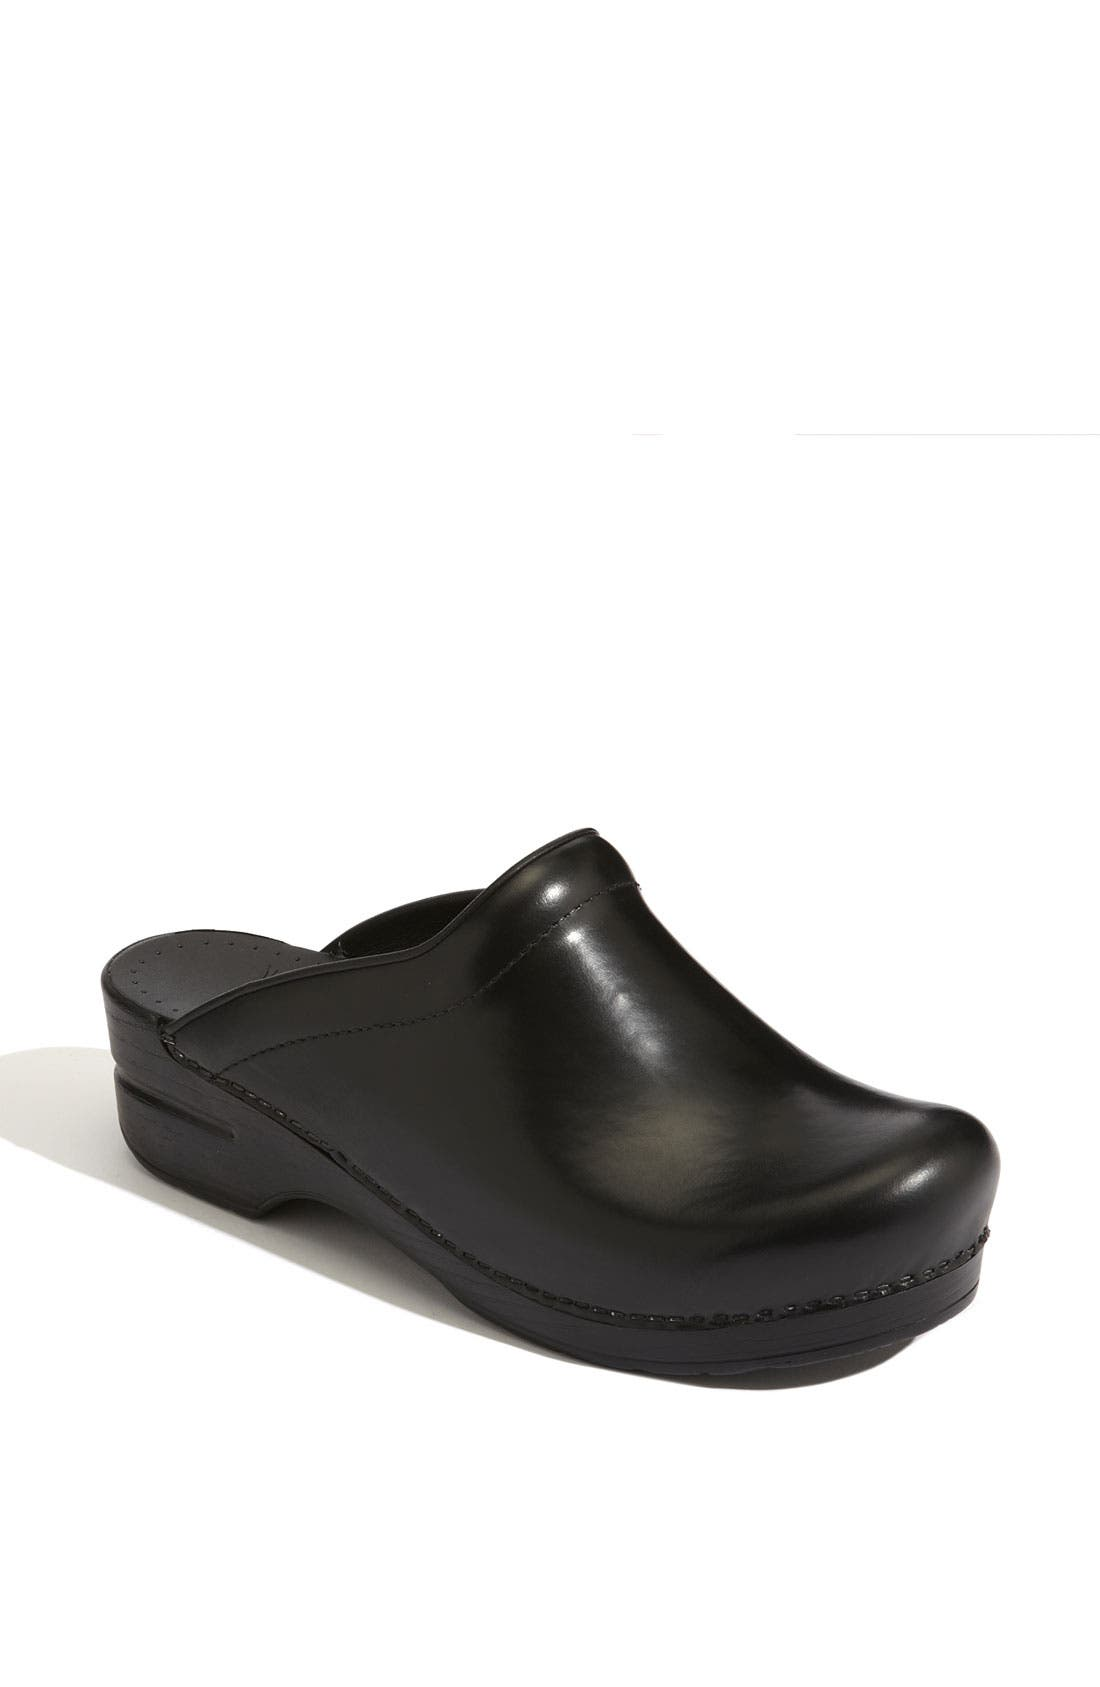 'Sonja' Leather Clog,                             Main thumbnail 1, color,                             Black Cabrio